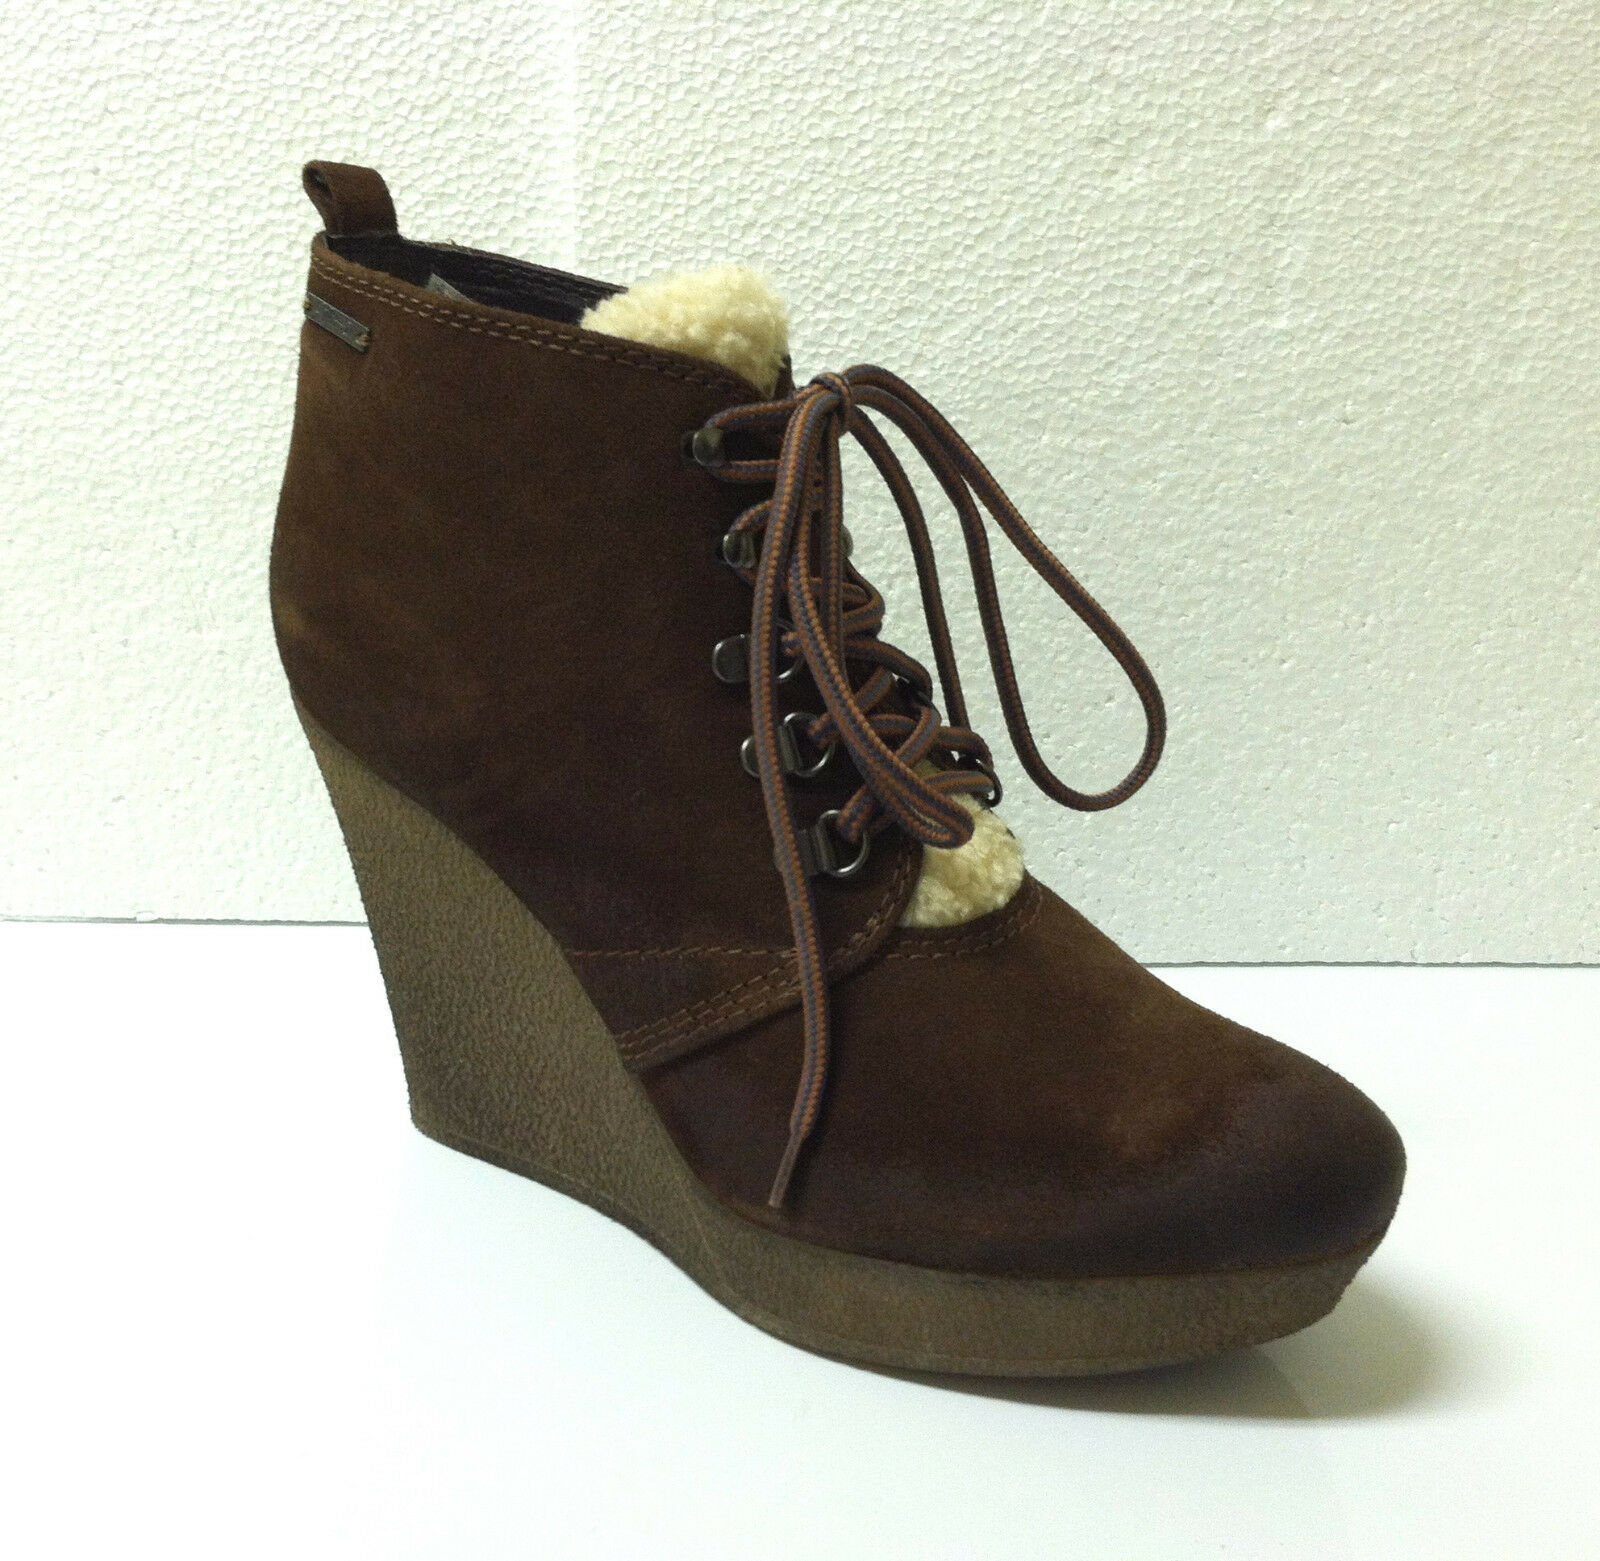 Diesel Enos Ankle Lace Up Boots Suede Leather Solid Solid Solid Brown Mustang Size 9 Medium 10ee3b